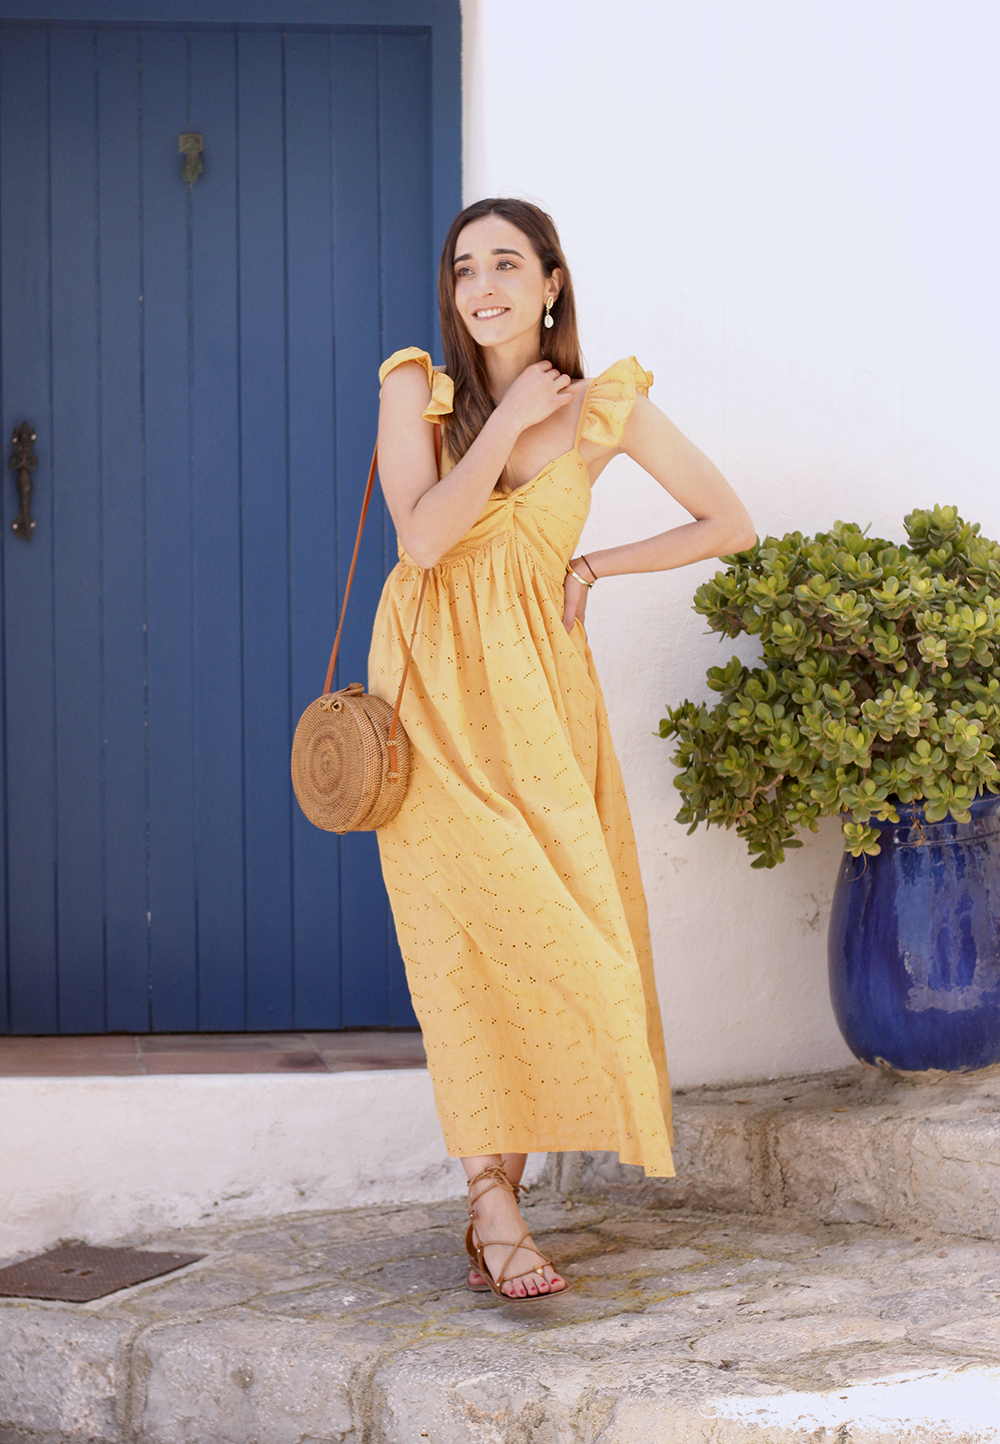 mustard embroidered midi dress straw bag street style outfit 2019 vacation ibiza8